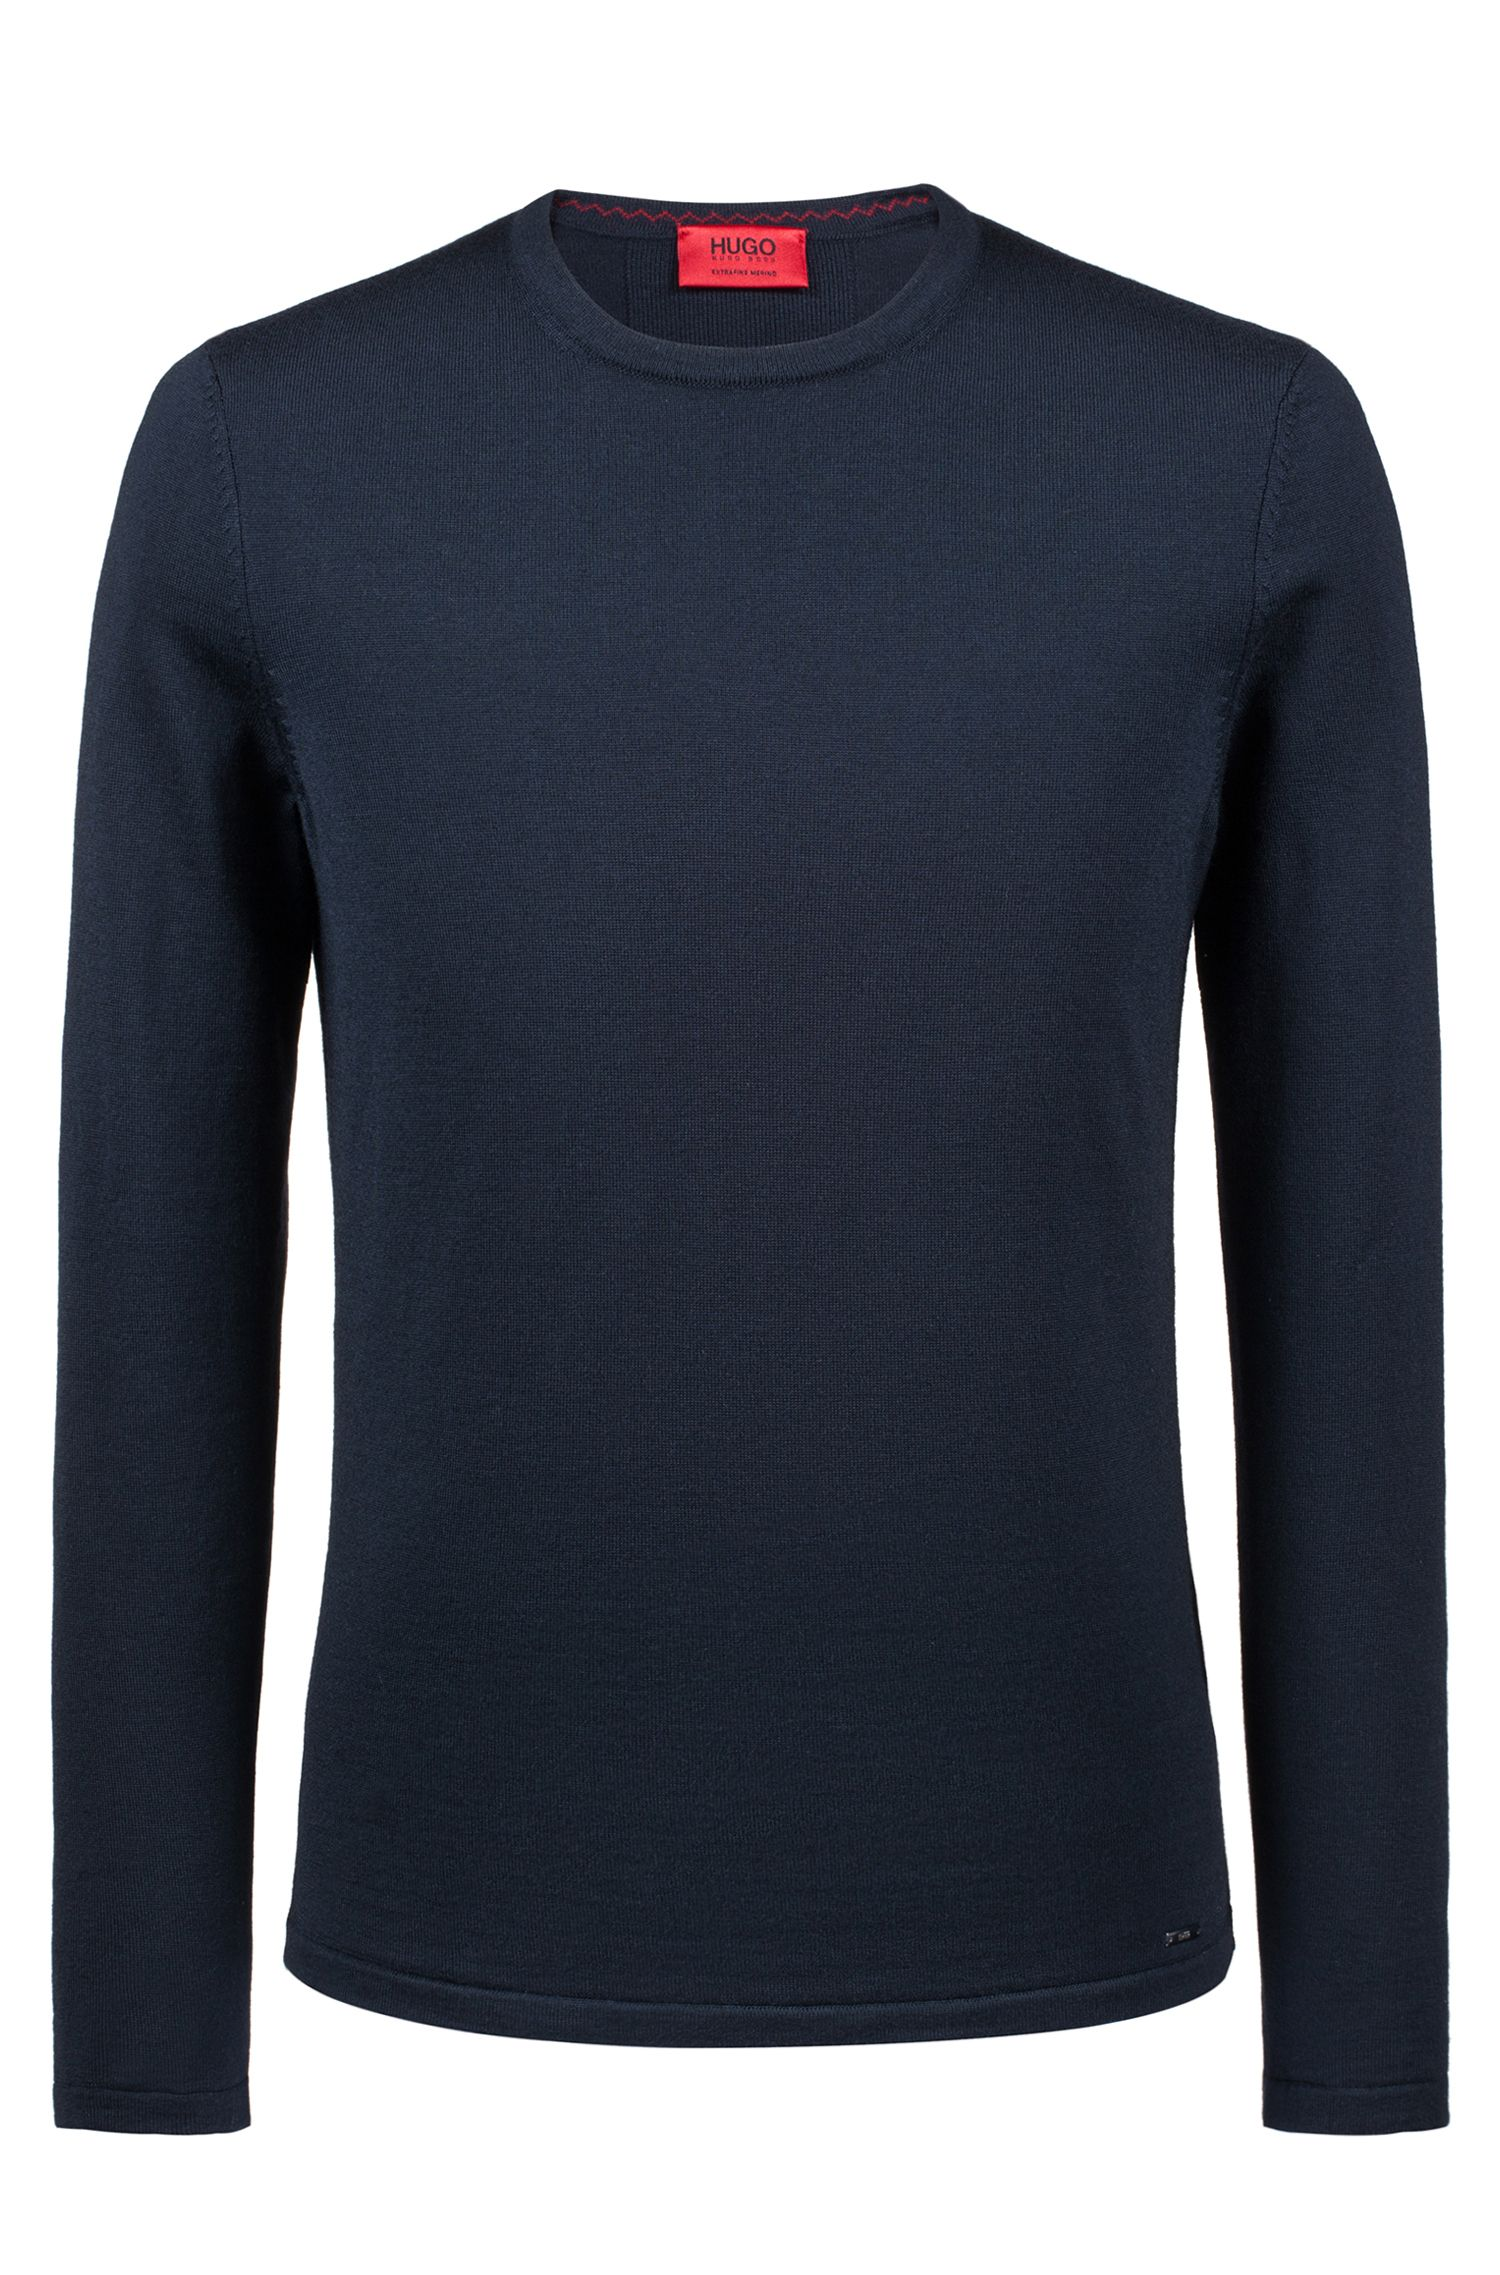 Crew-neck sweater in Merino wool